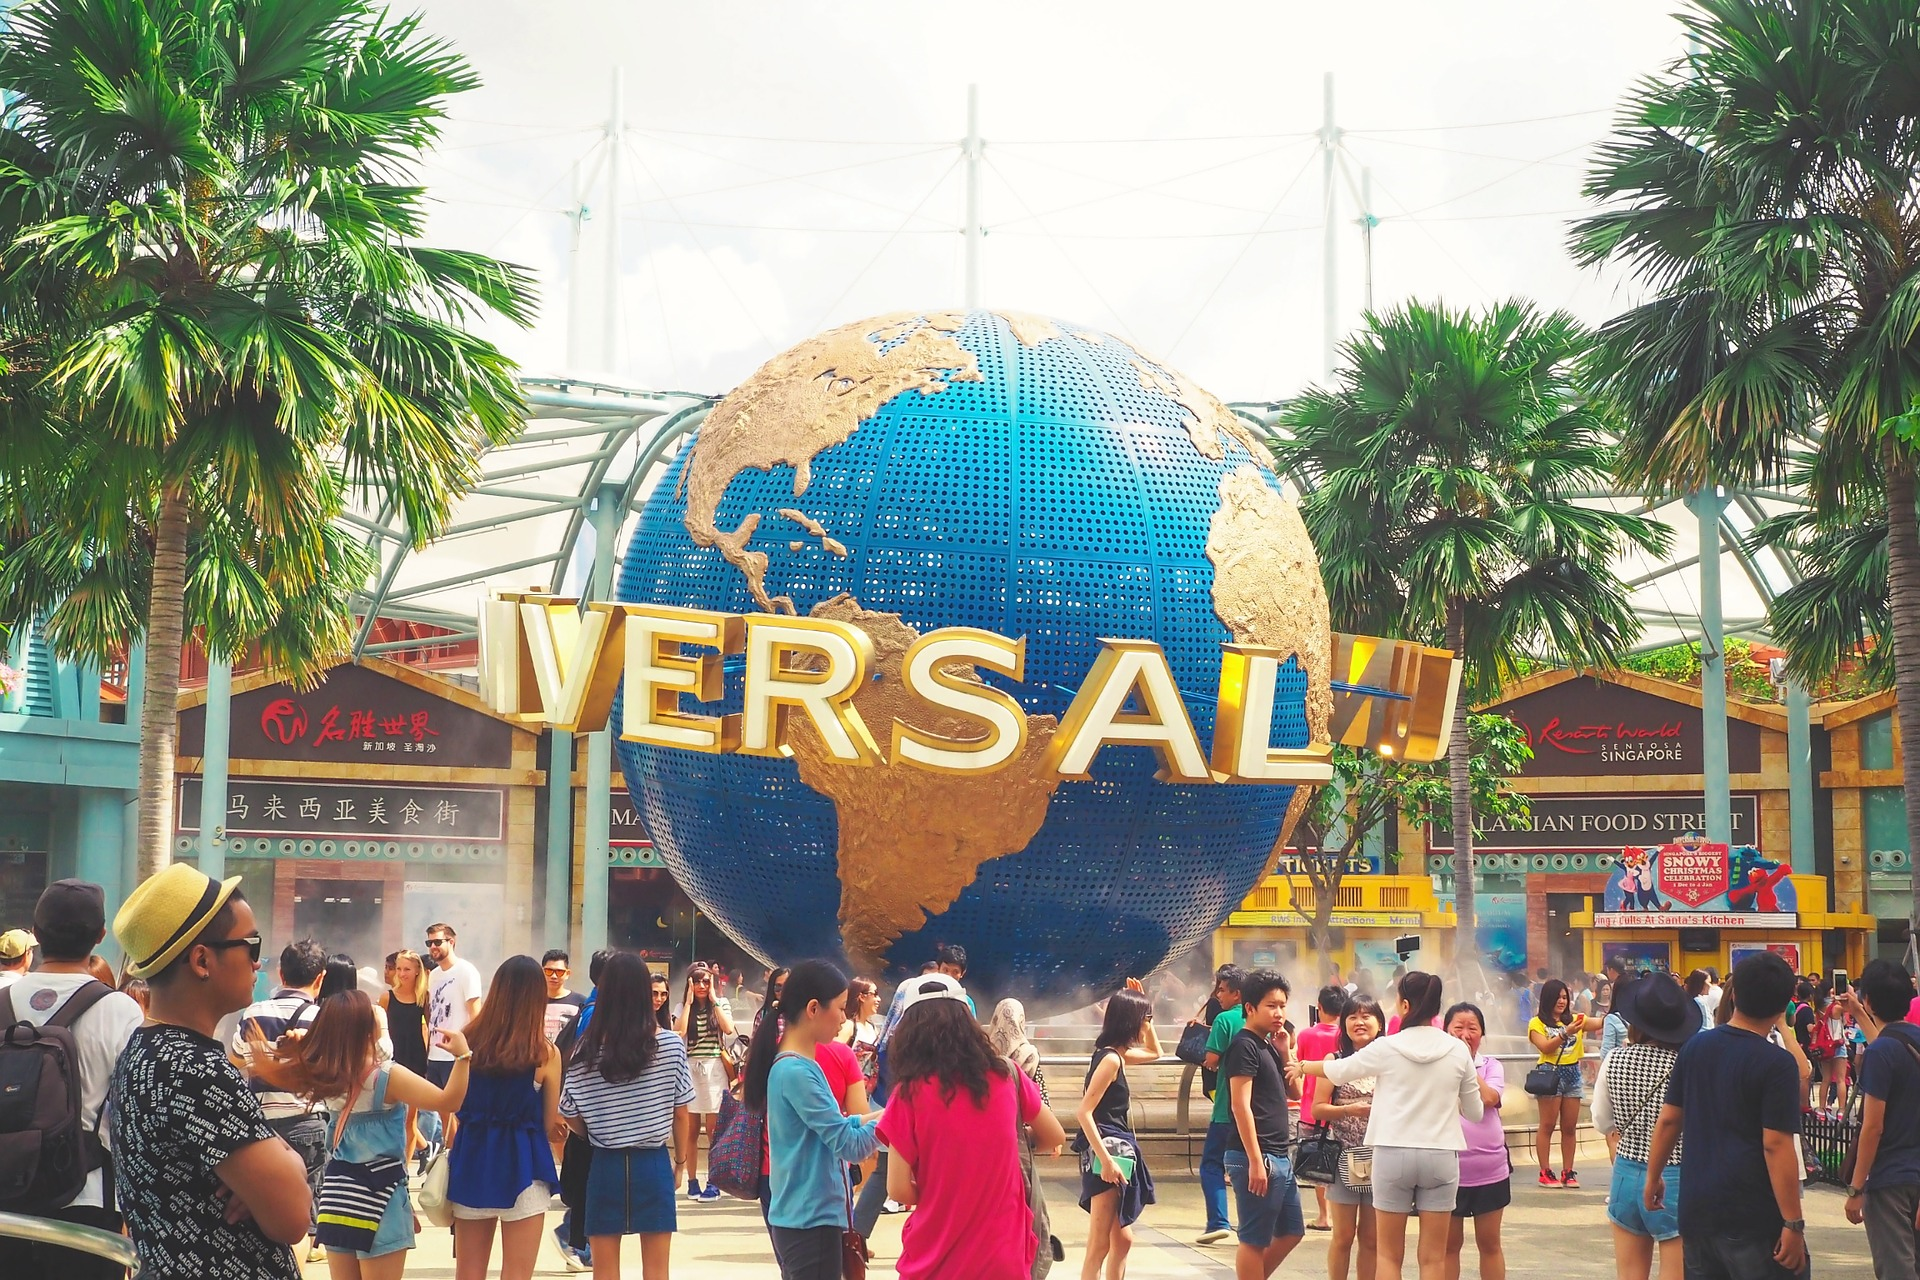 How did we enjoy Singapore as our First International Travel Destination